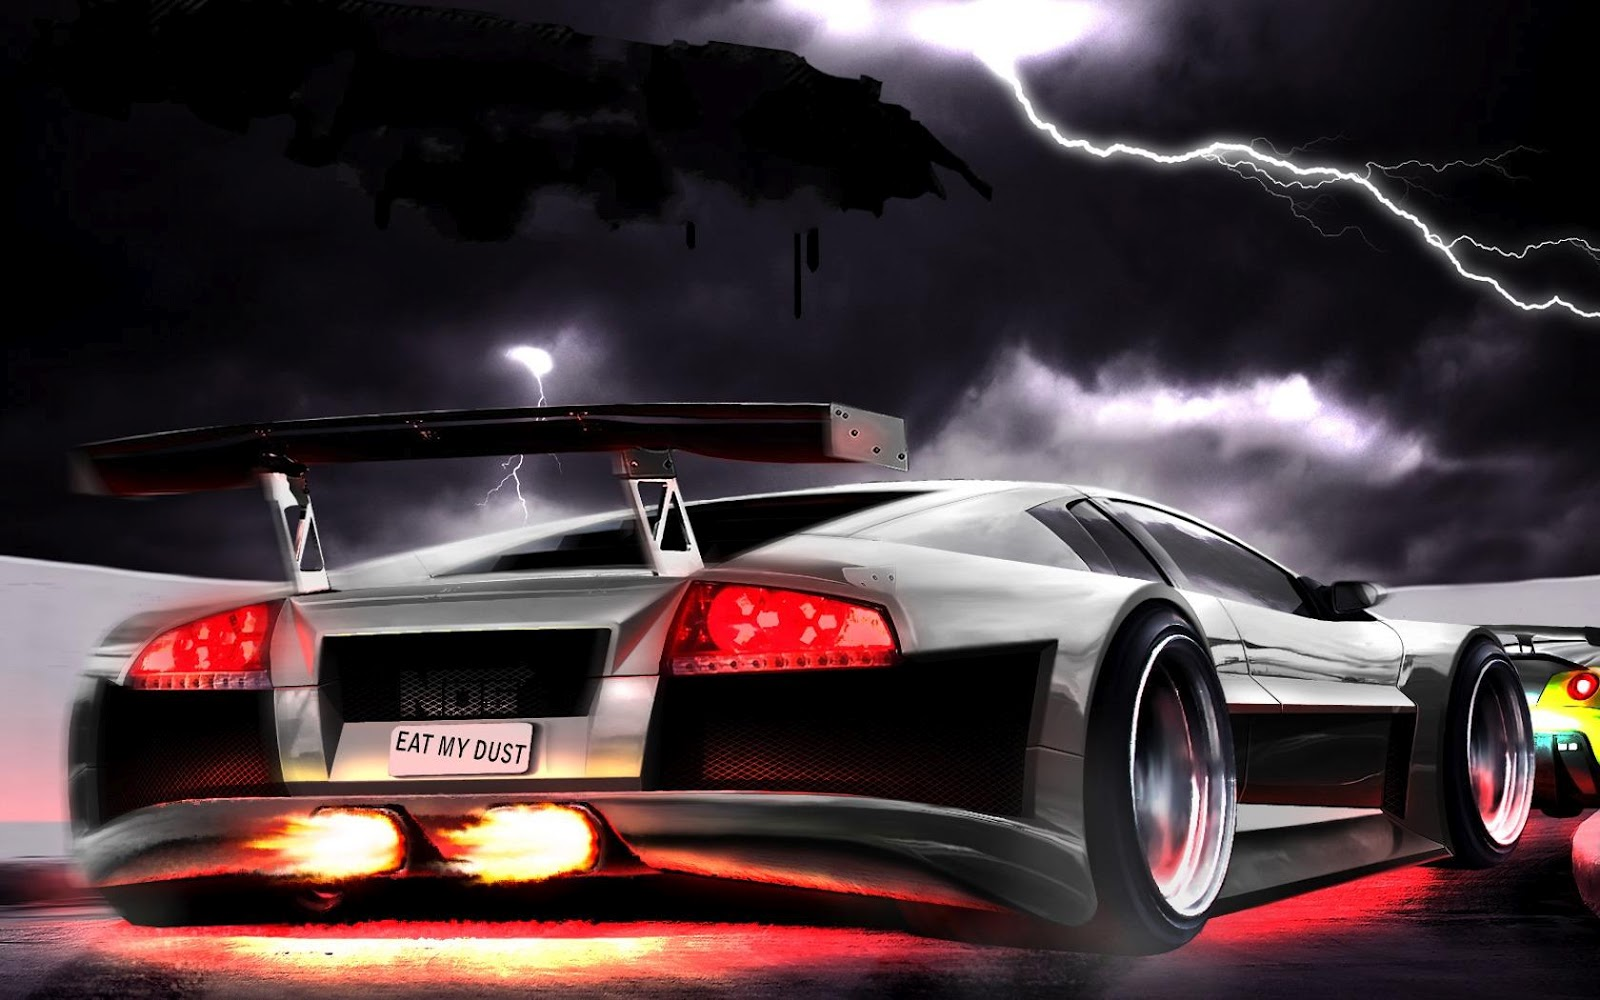 http://2.bp.blogspot.com/-IsXnp8kBRPM/T3Ke1JS1zHI/AAAAAAAAA5k/imFTTUCz4fQ/s1600/Digital_car_desktop-Background.jpg